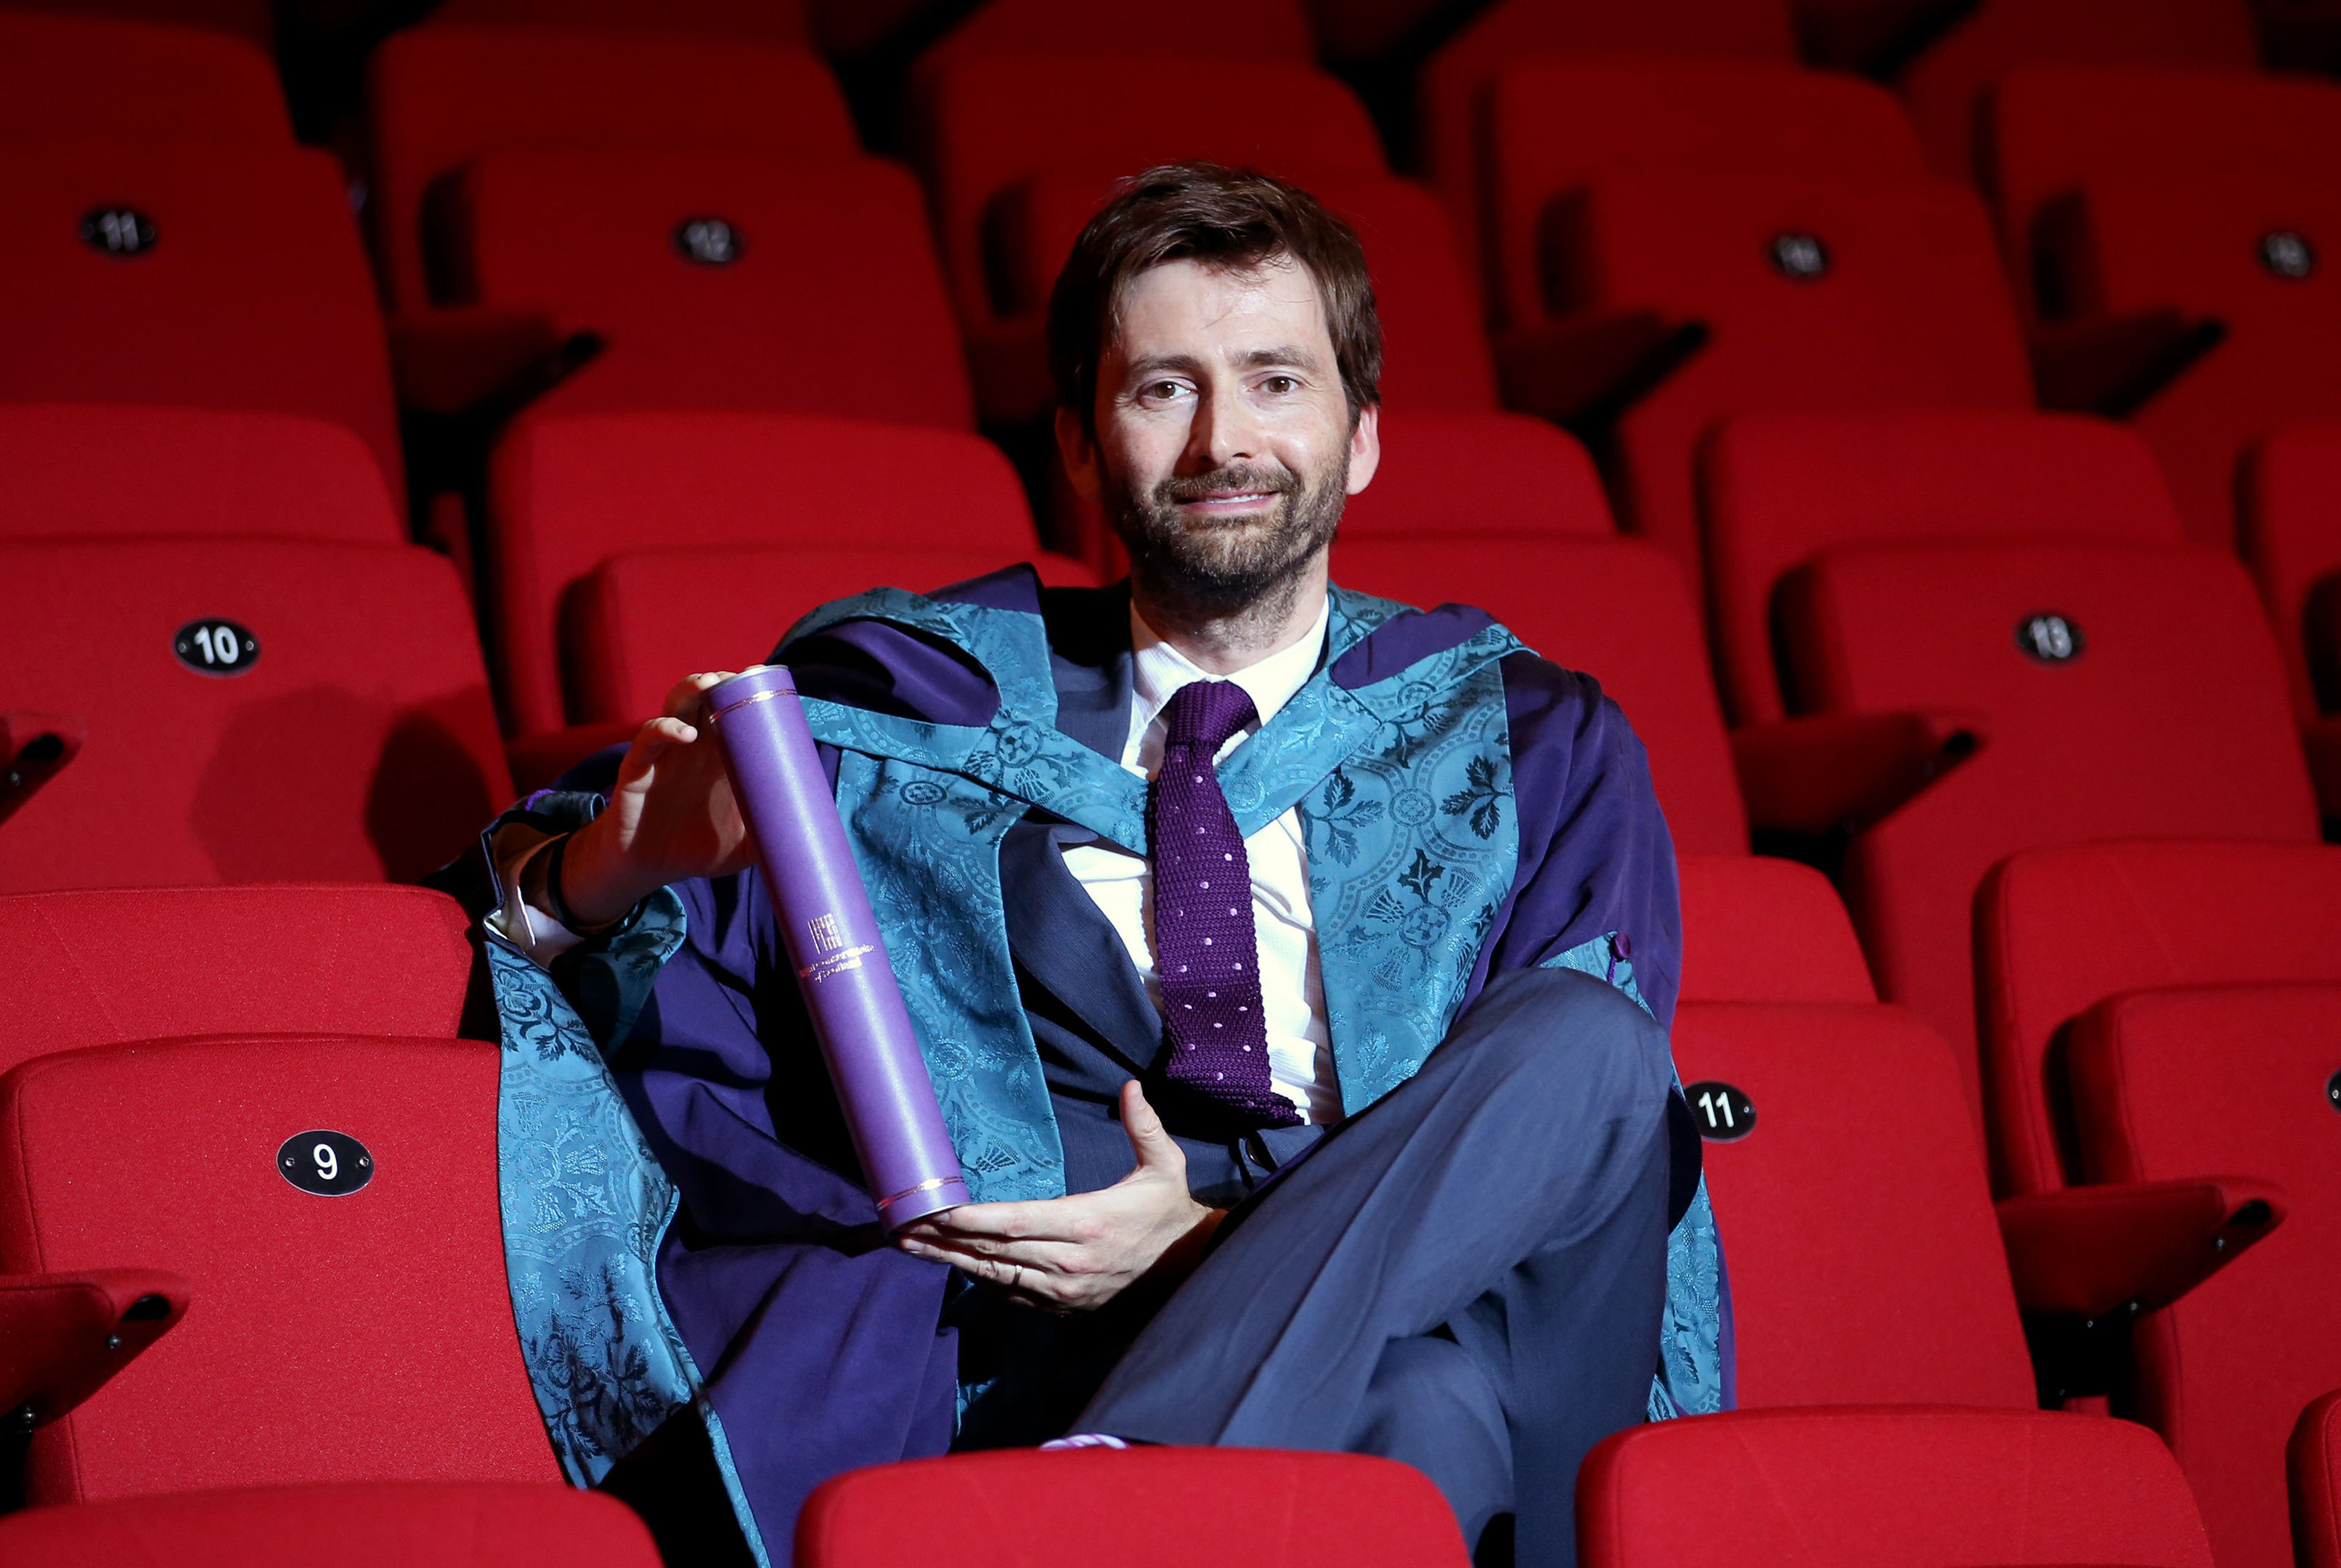 Actor David Tennant receives an Honorary Doctor of Drama from the Royal Conservatoire of Scotland in Glasgow.